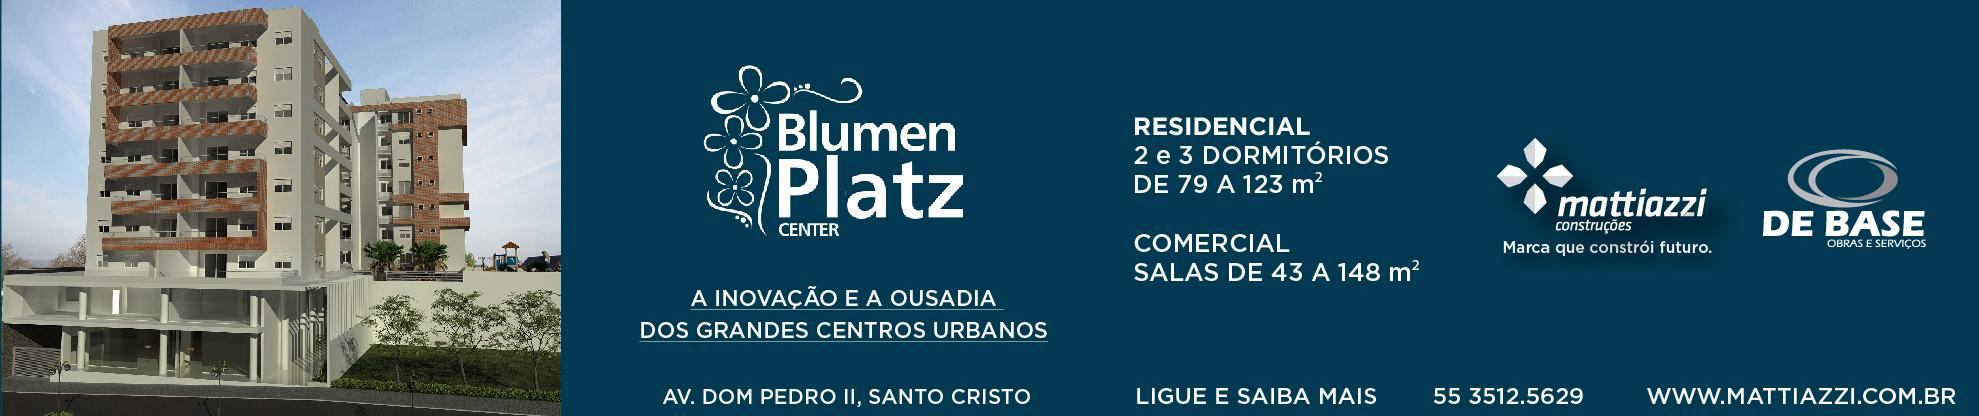 Blumen Platz Center - Outubro de 2015